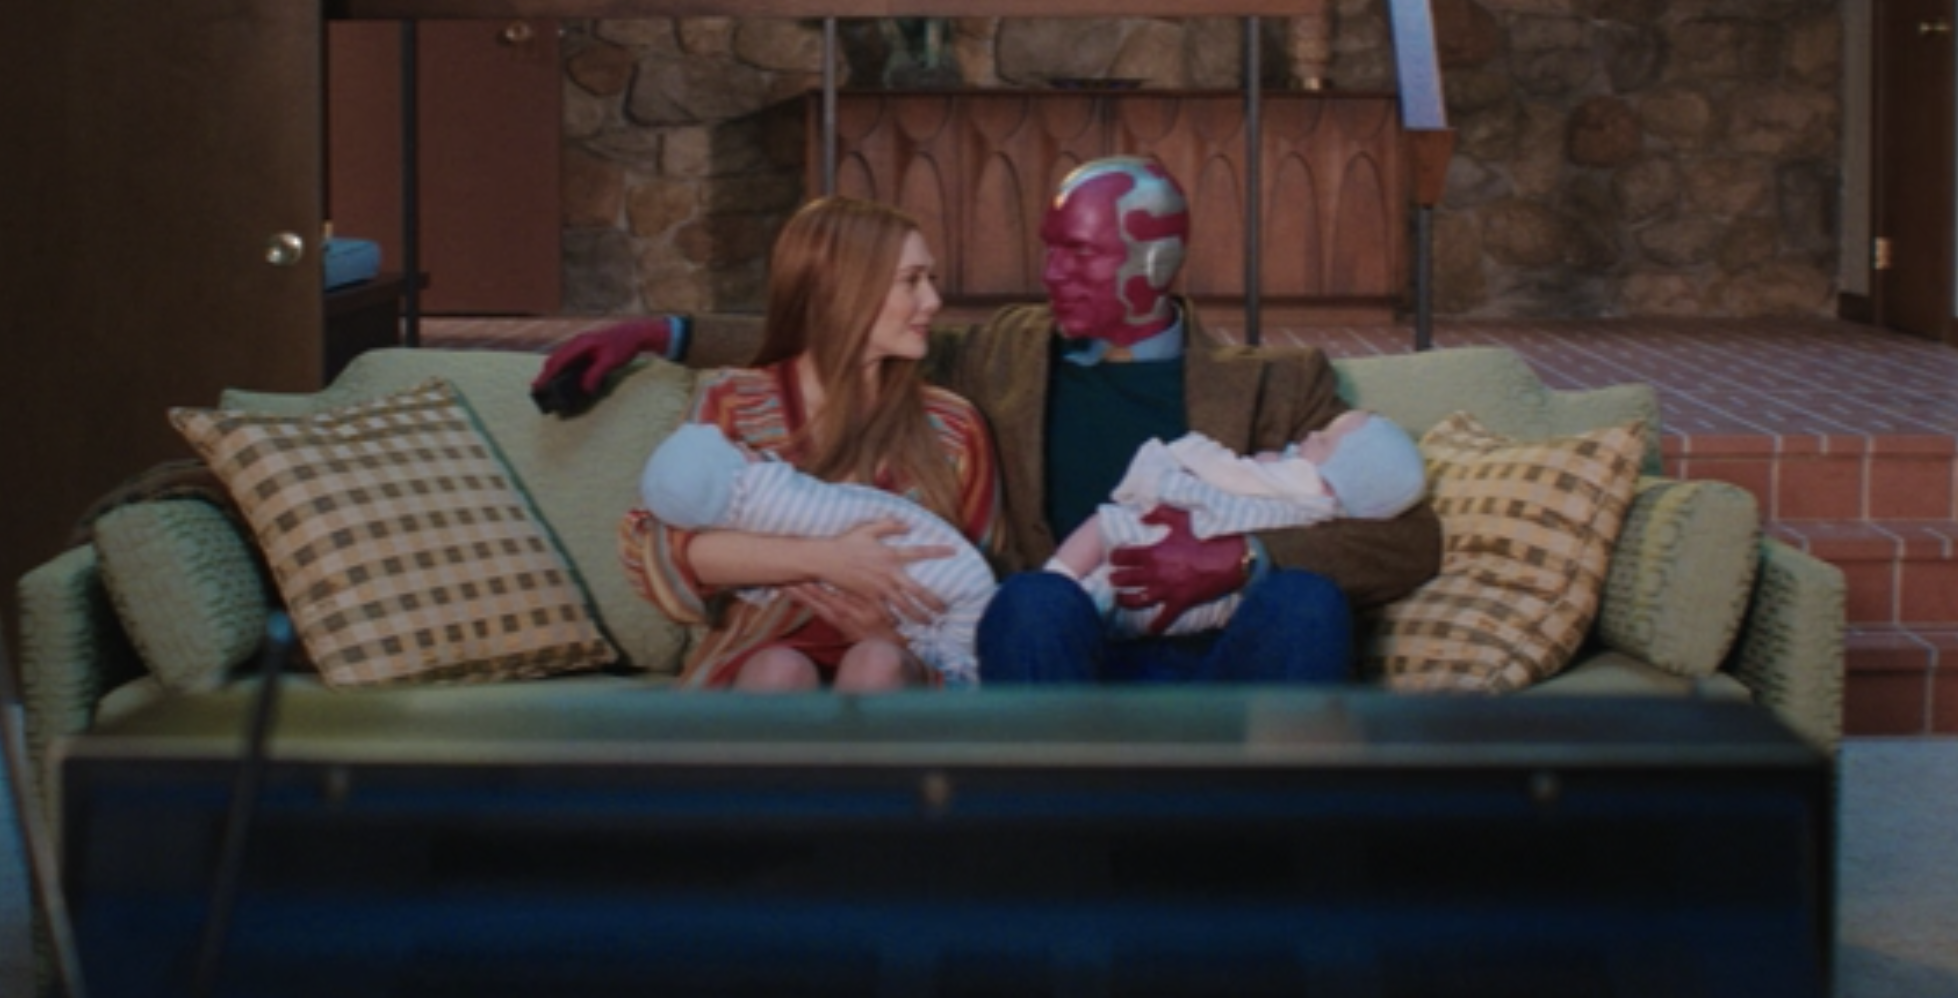 Vision and Wanda sitting on their couch holding their twin boys